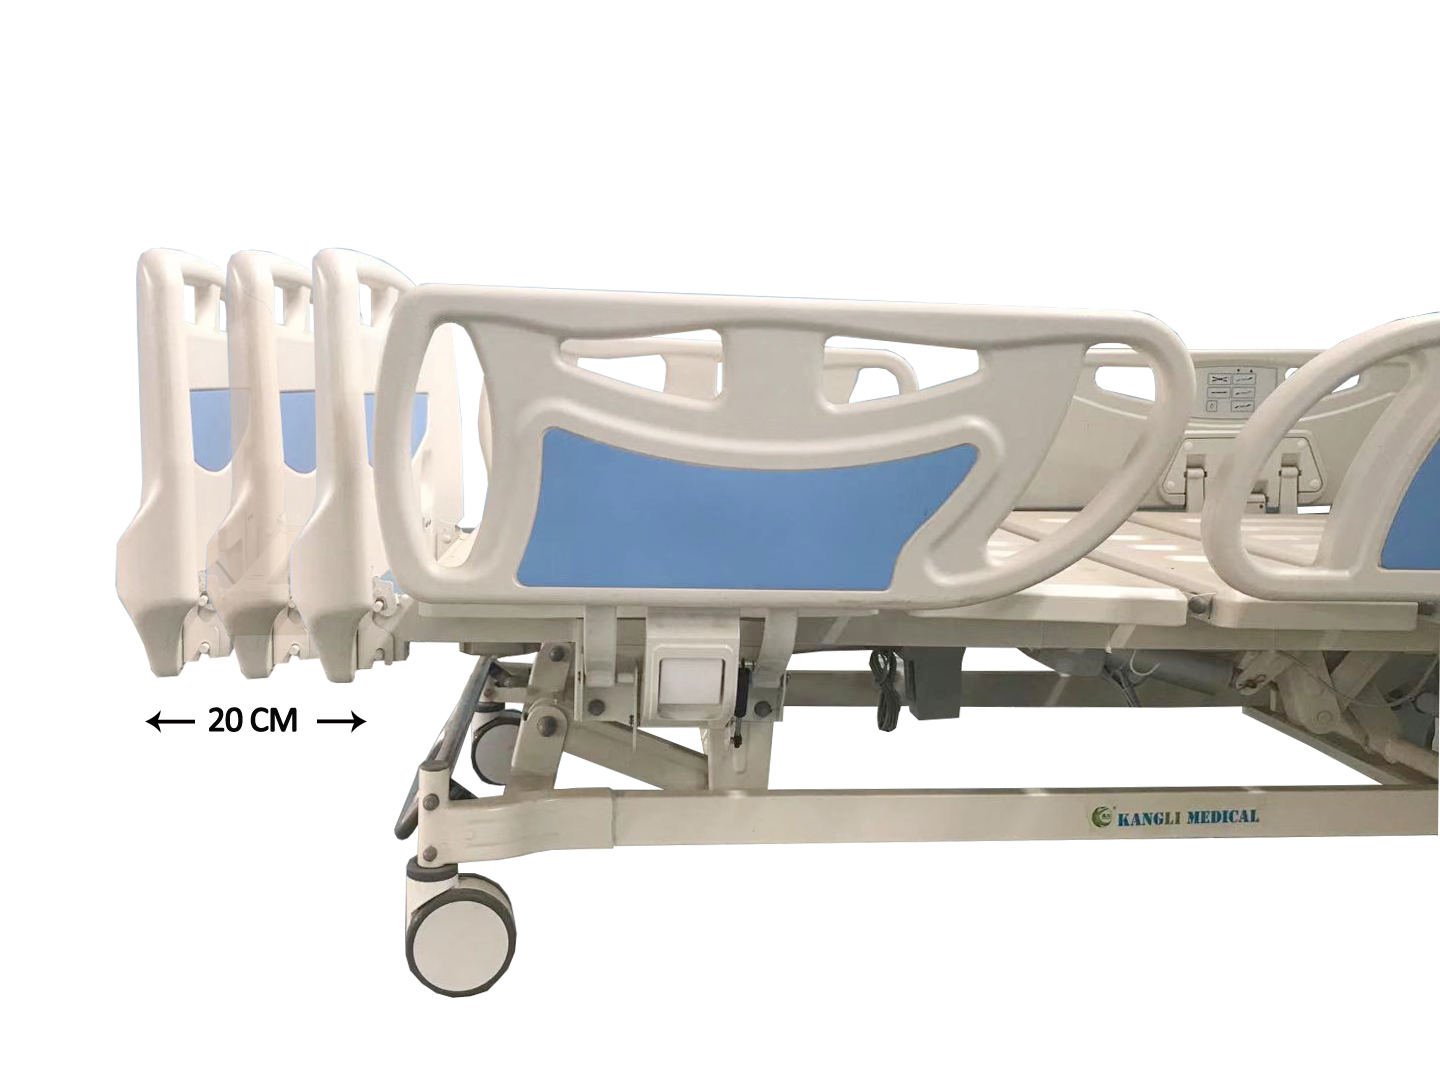 icu bed with length extension